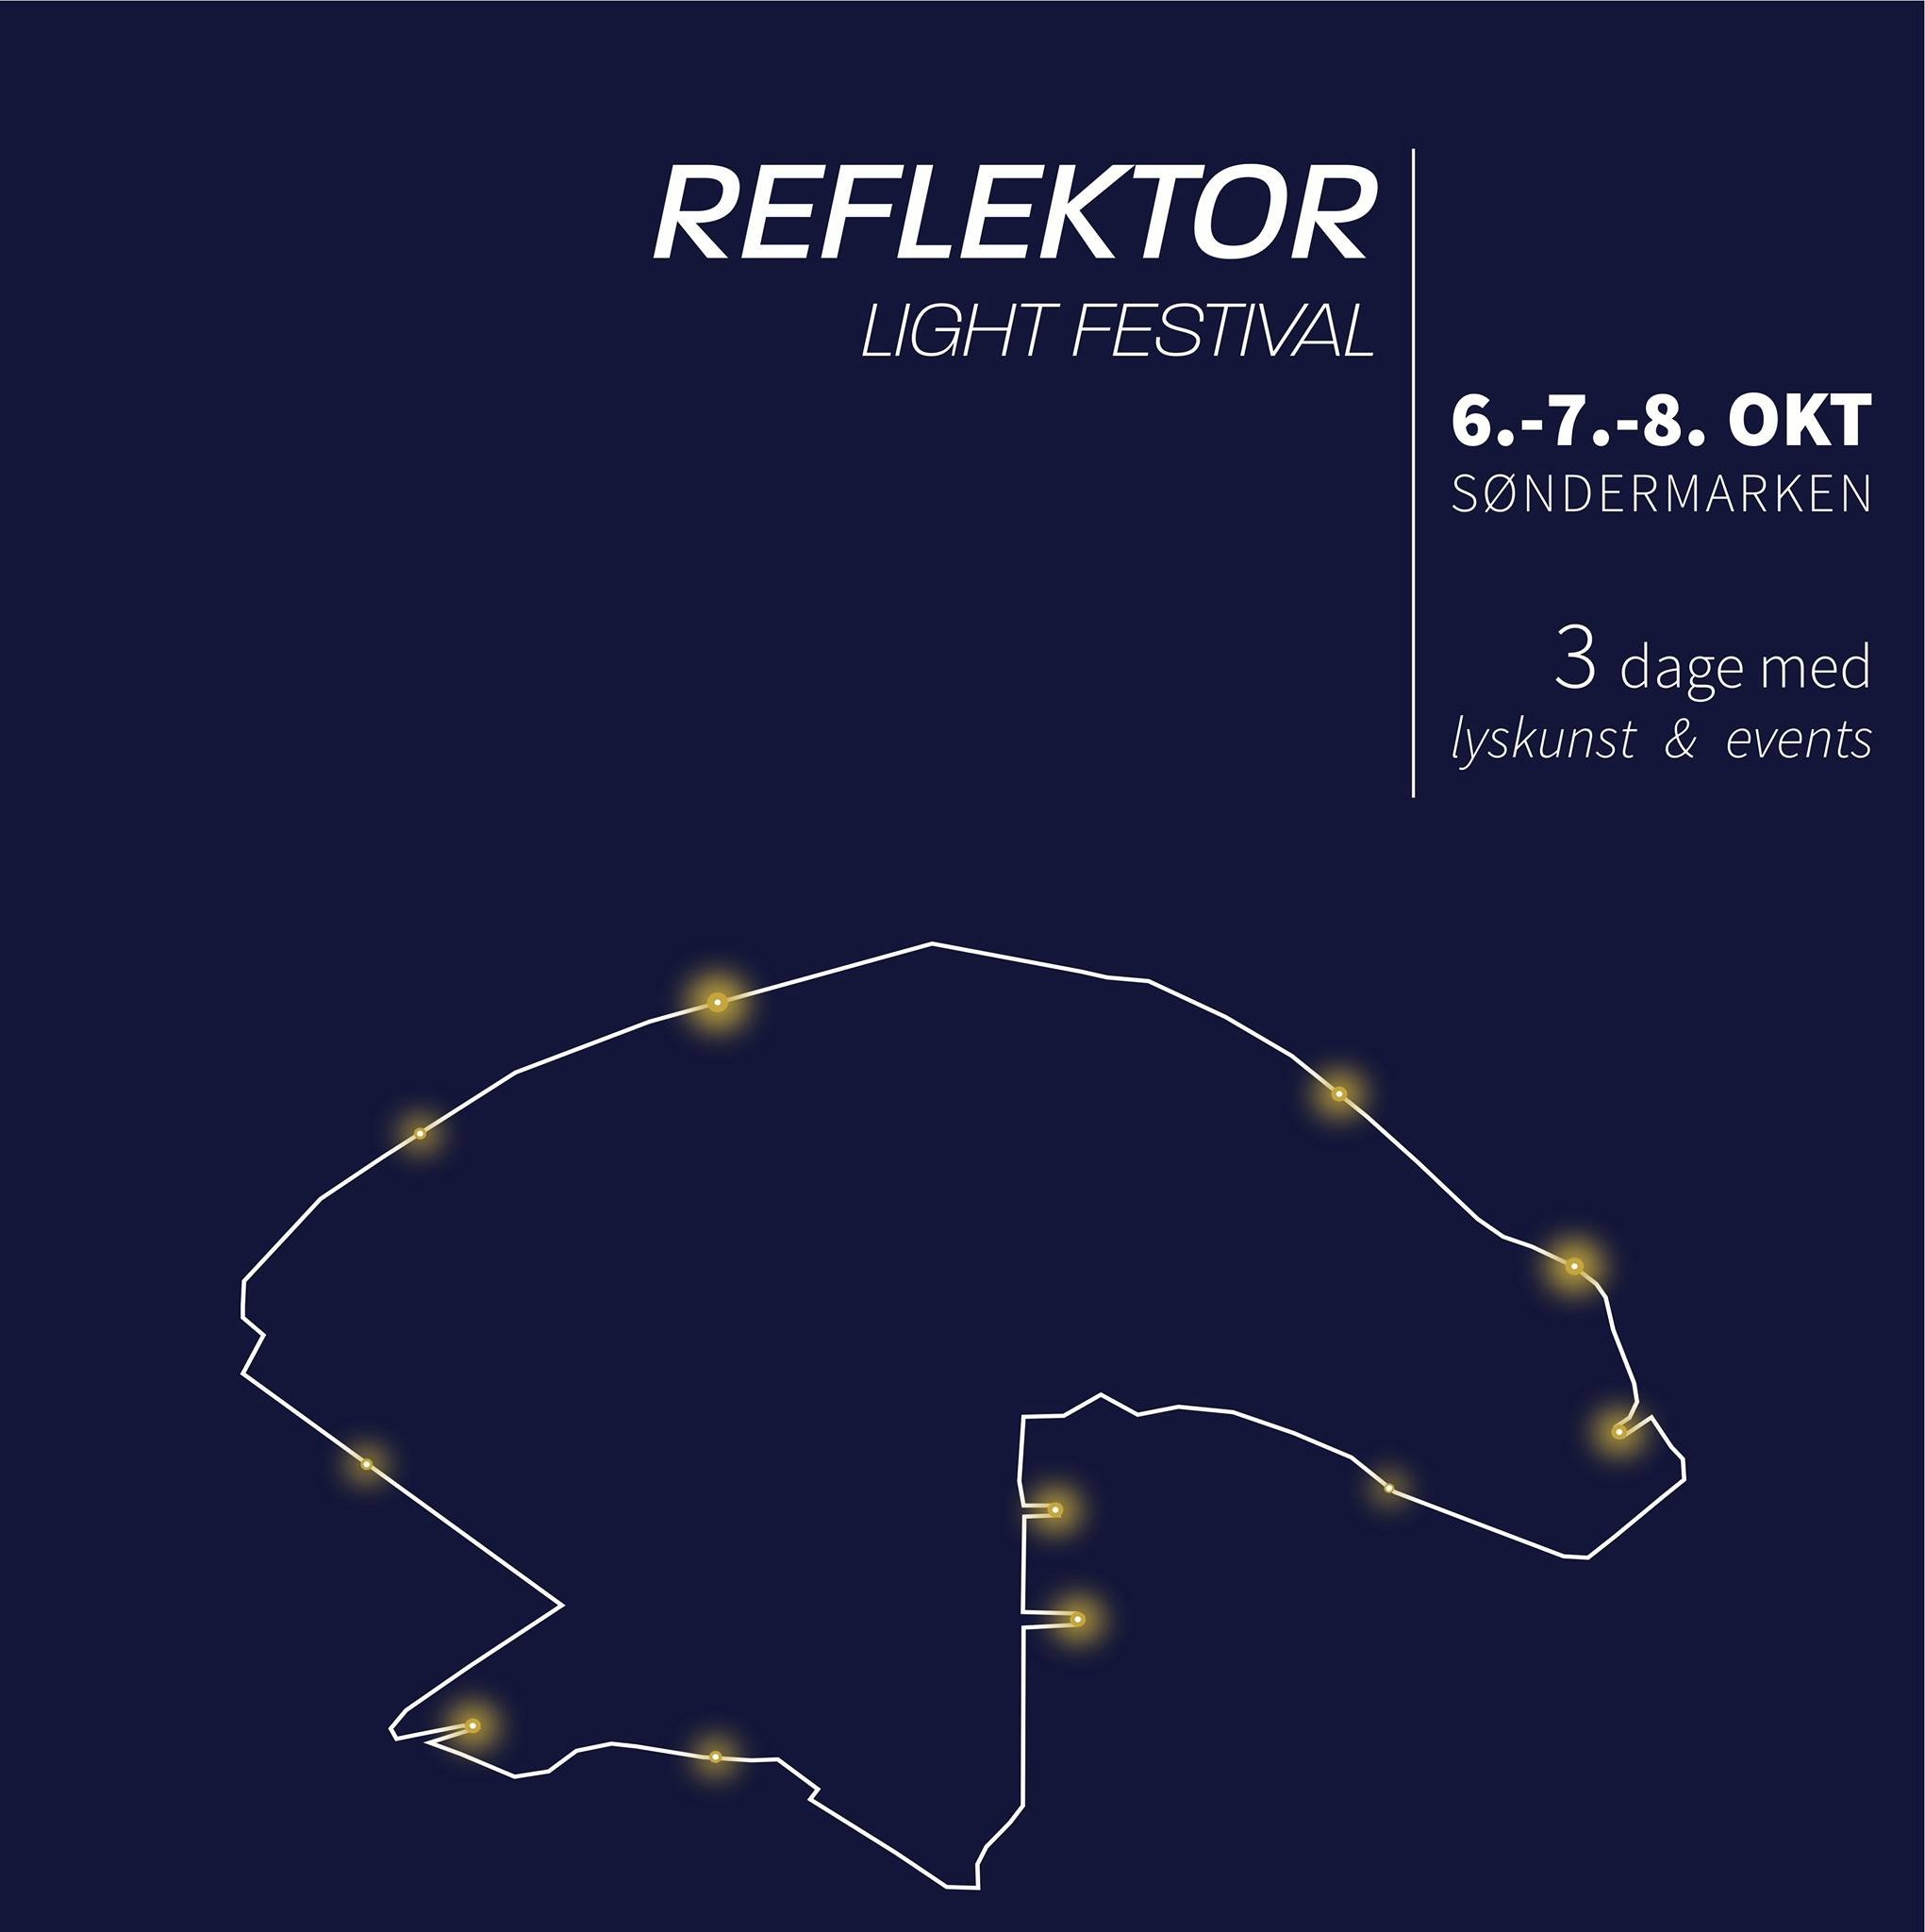 reflektor-light-festival-sourced-from-fb-page